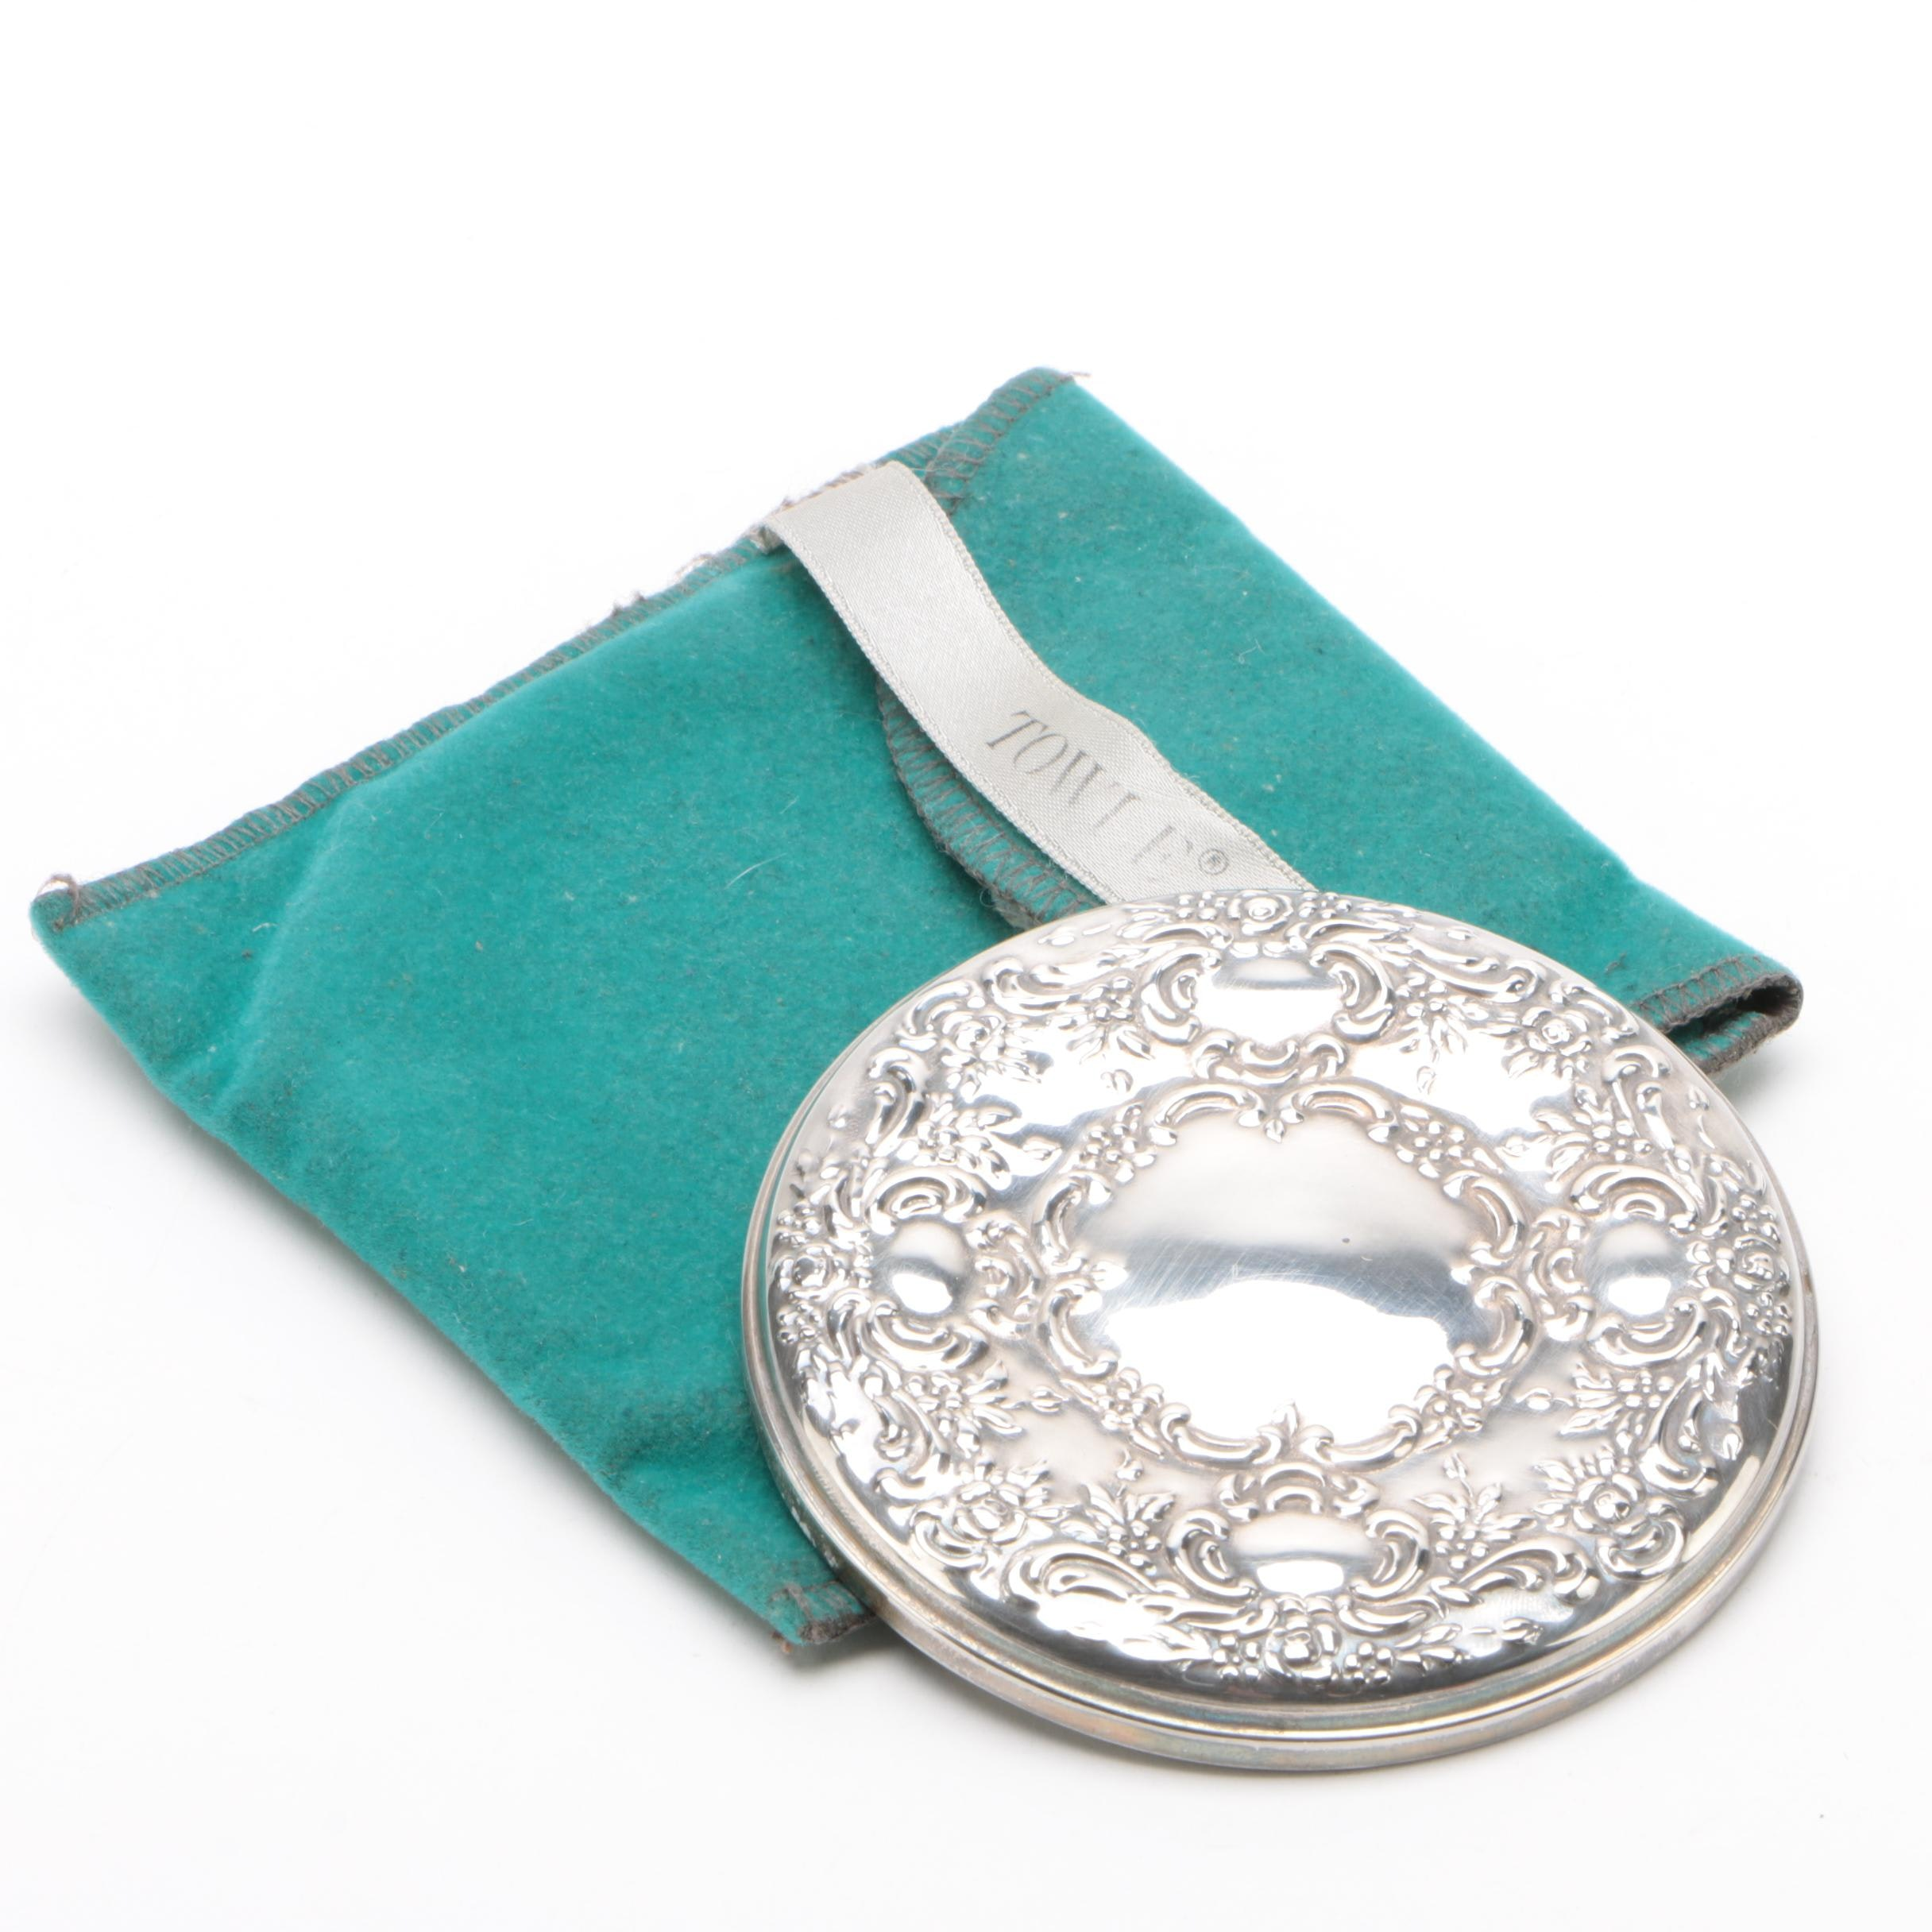 Towle Sterling Silver Compact Mirror